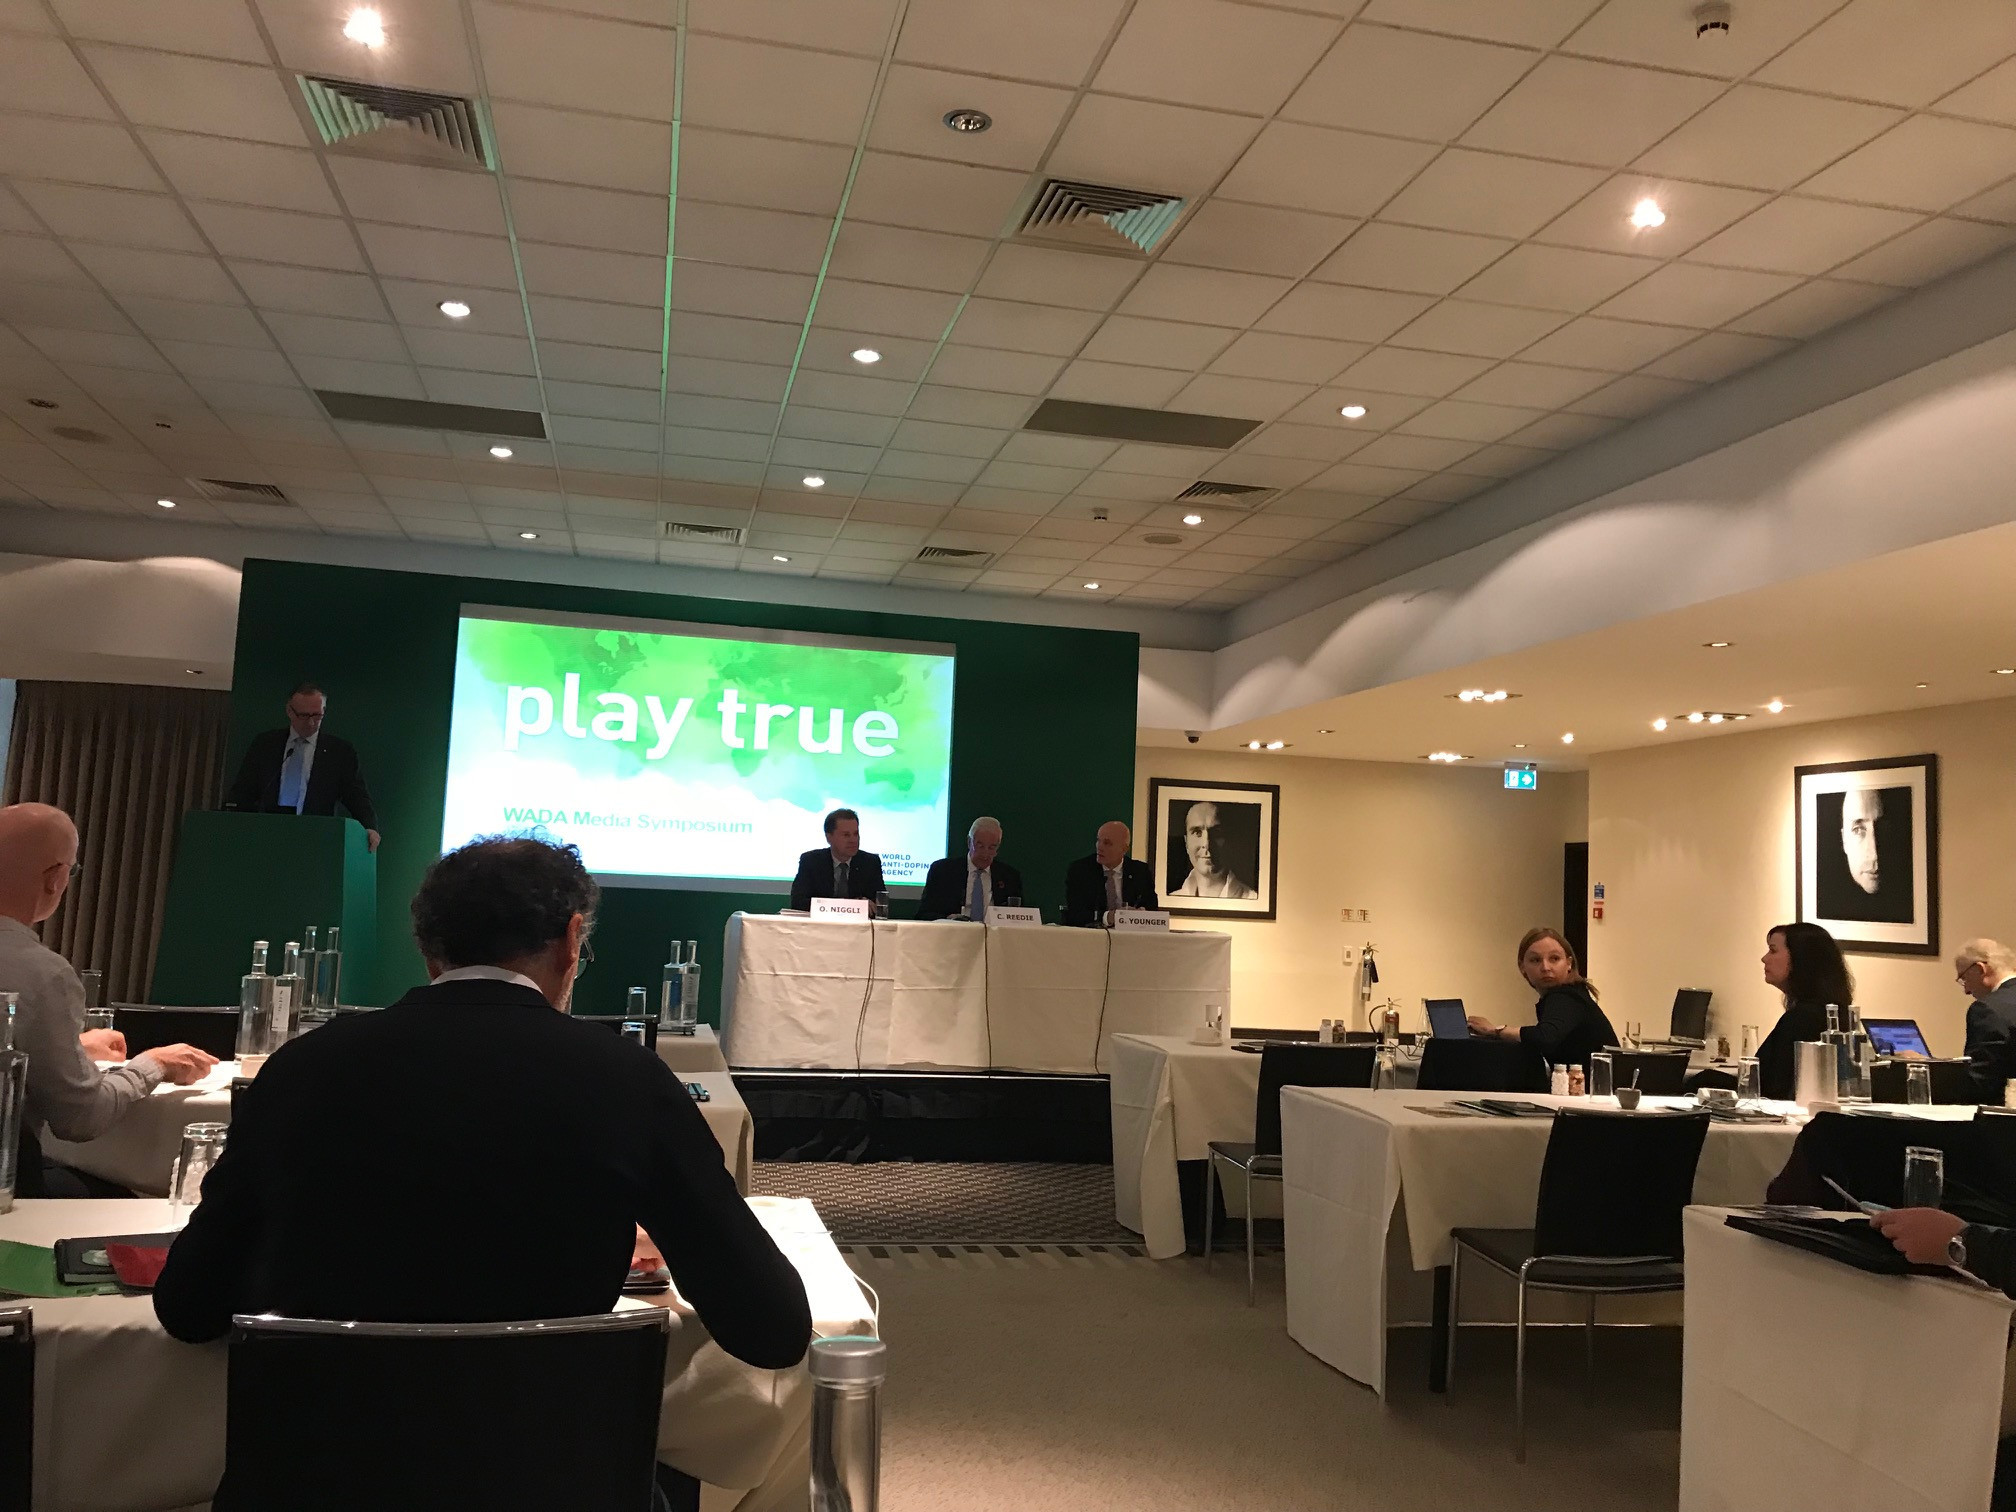 The trio of officials present at the symposium presented a united front against attacks on WADA ©ITG